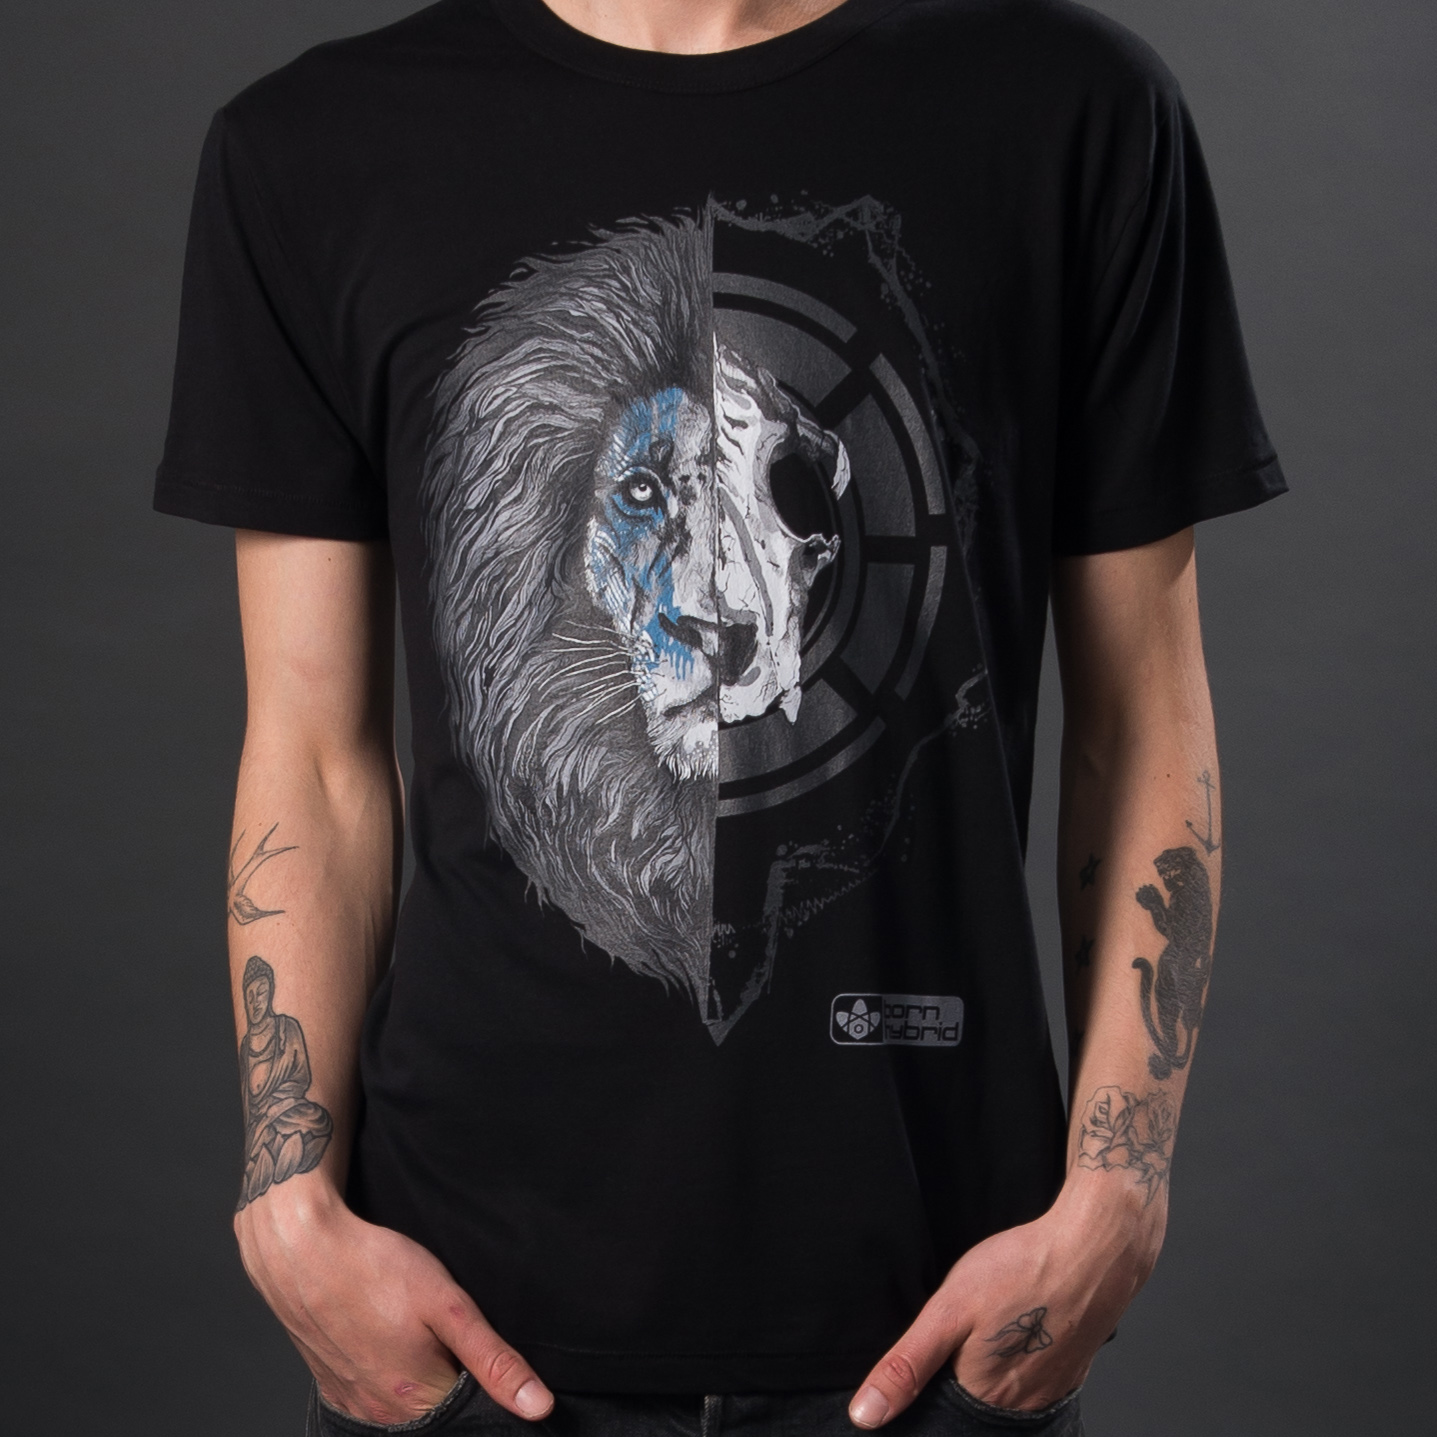 Lion graphic t-shirt in organic cotton by sustainable clothing brand Born Hybrid